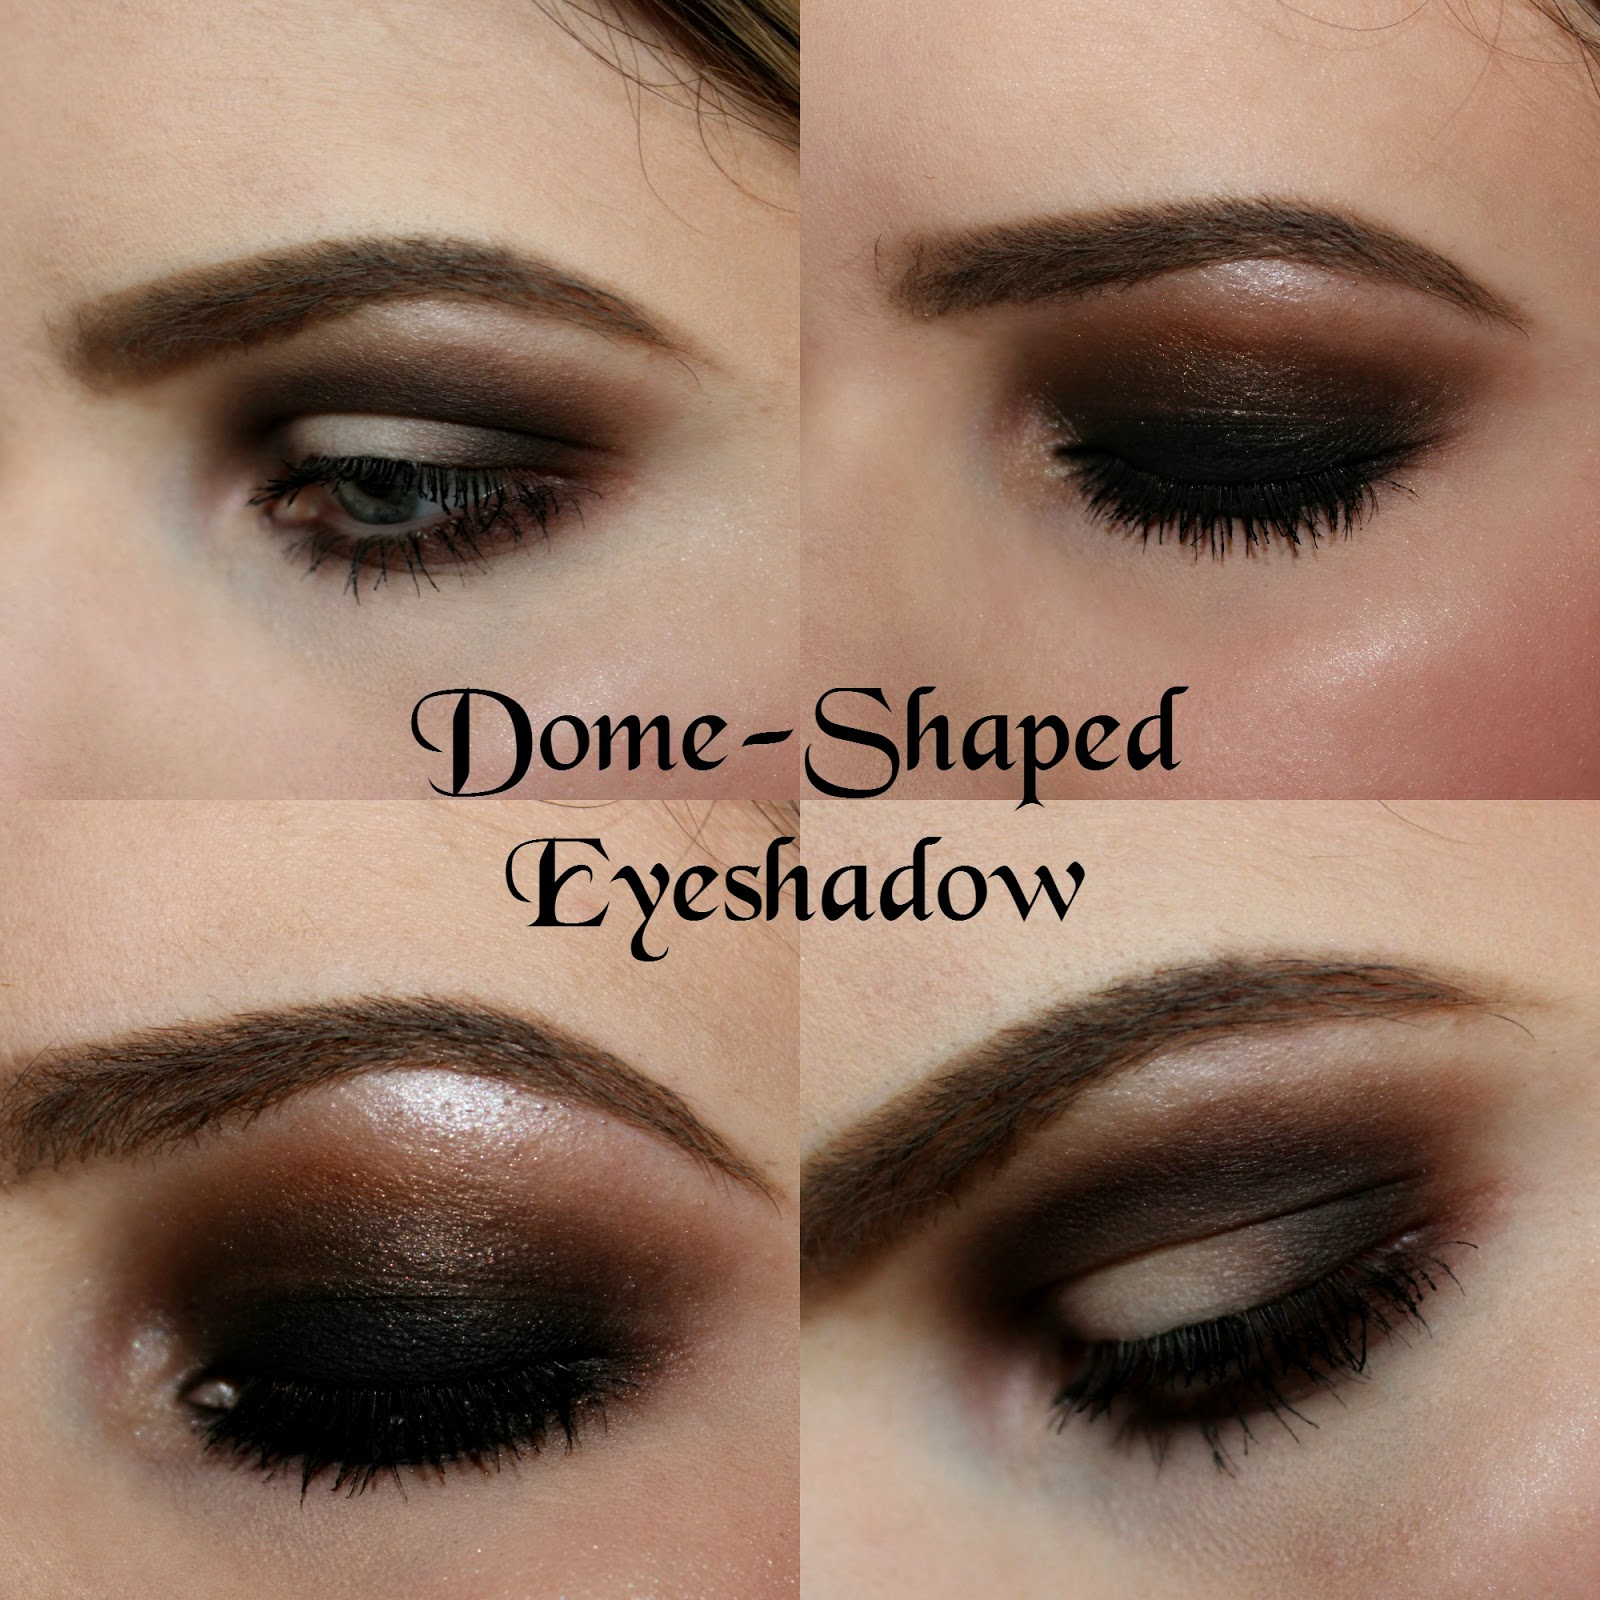 The Dome, Or Halfcircle Shape Is Becoming Very Popular For Hooded Eyes, As  It Makes Them Look More Round I Struggle With Making Domes Because I'm So  Used